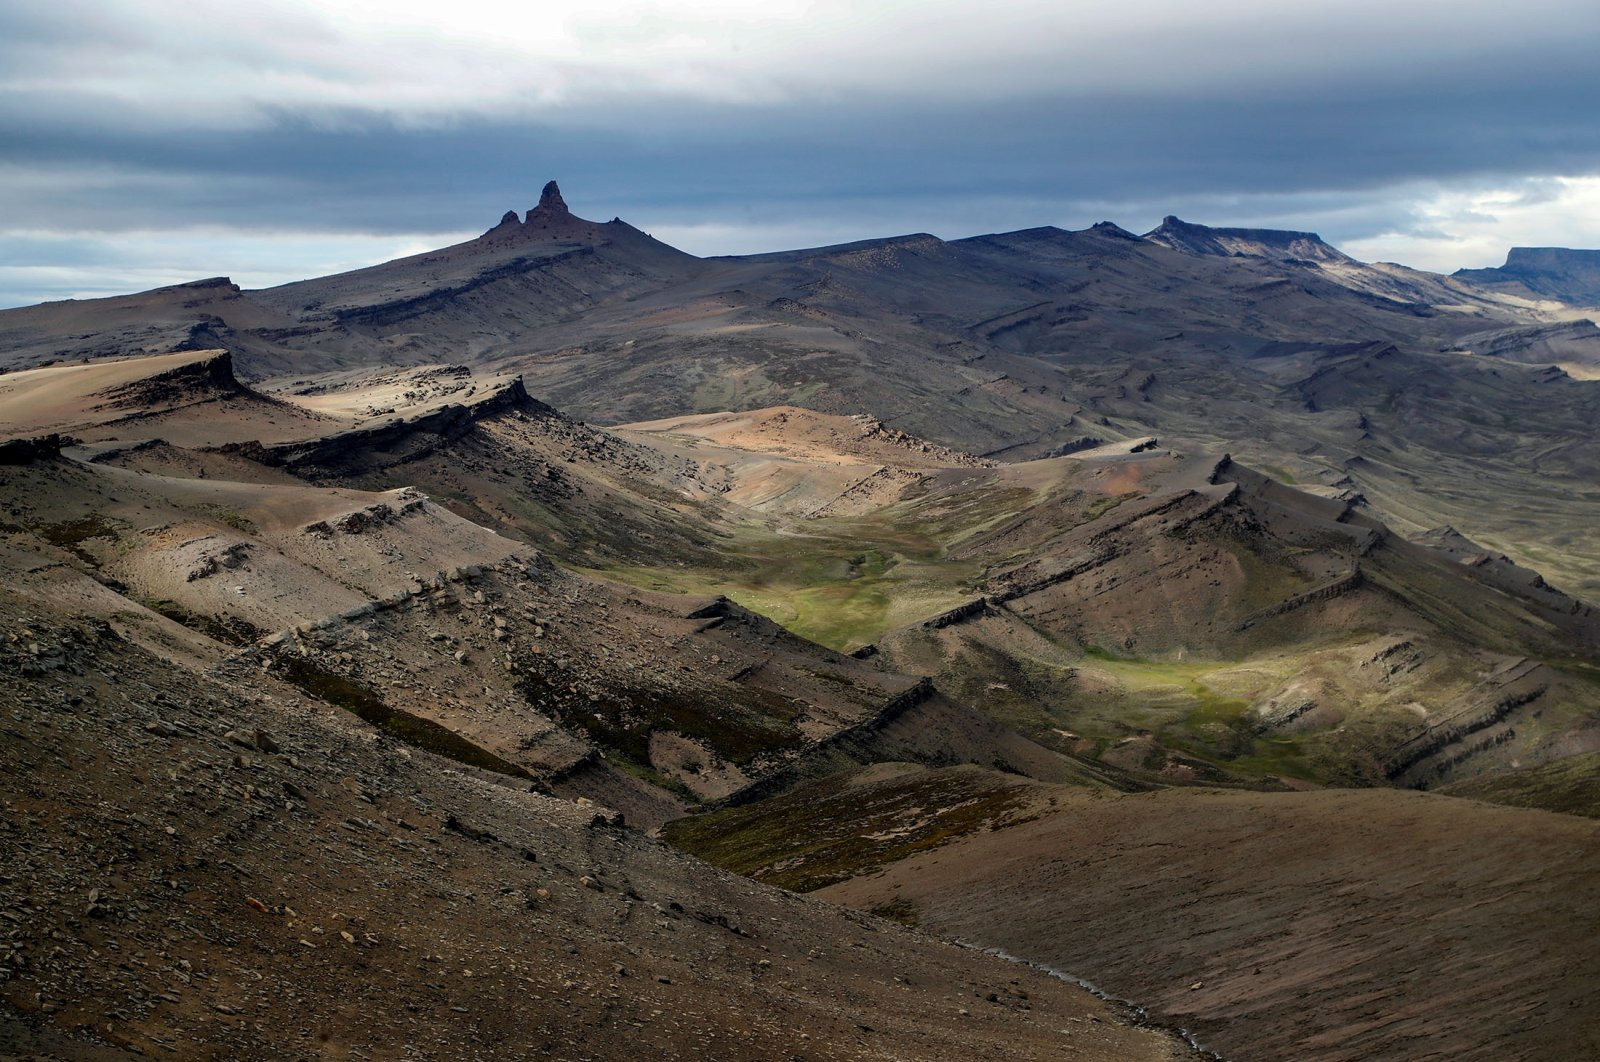 A general view of the Valley of Las Chinas, in the Chilean Patagonia, Chile, Feb. 25, 2020. (Chilean Antarctic Institute via REUTERS)